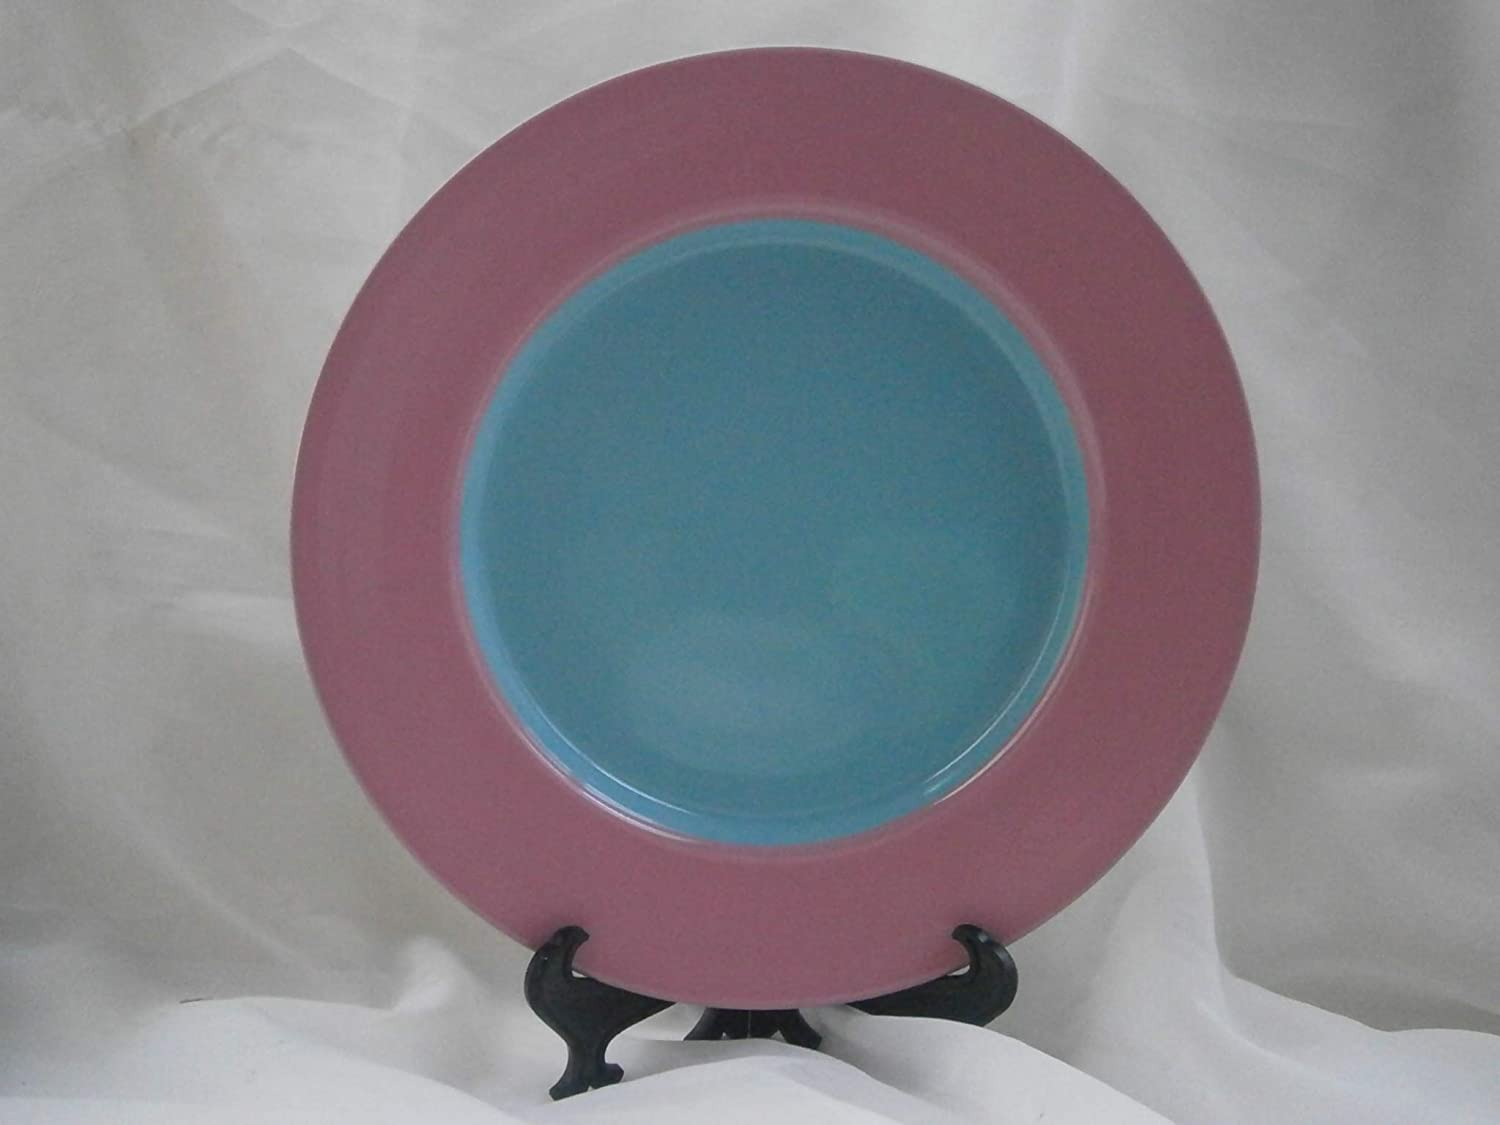 Lindt-Stymeist Colorways 9 Salad Plate PINK//TURQUOISE